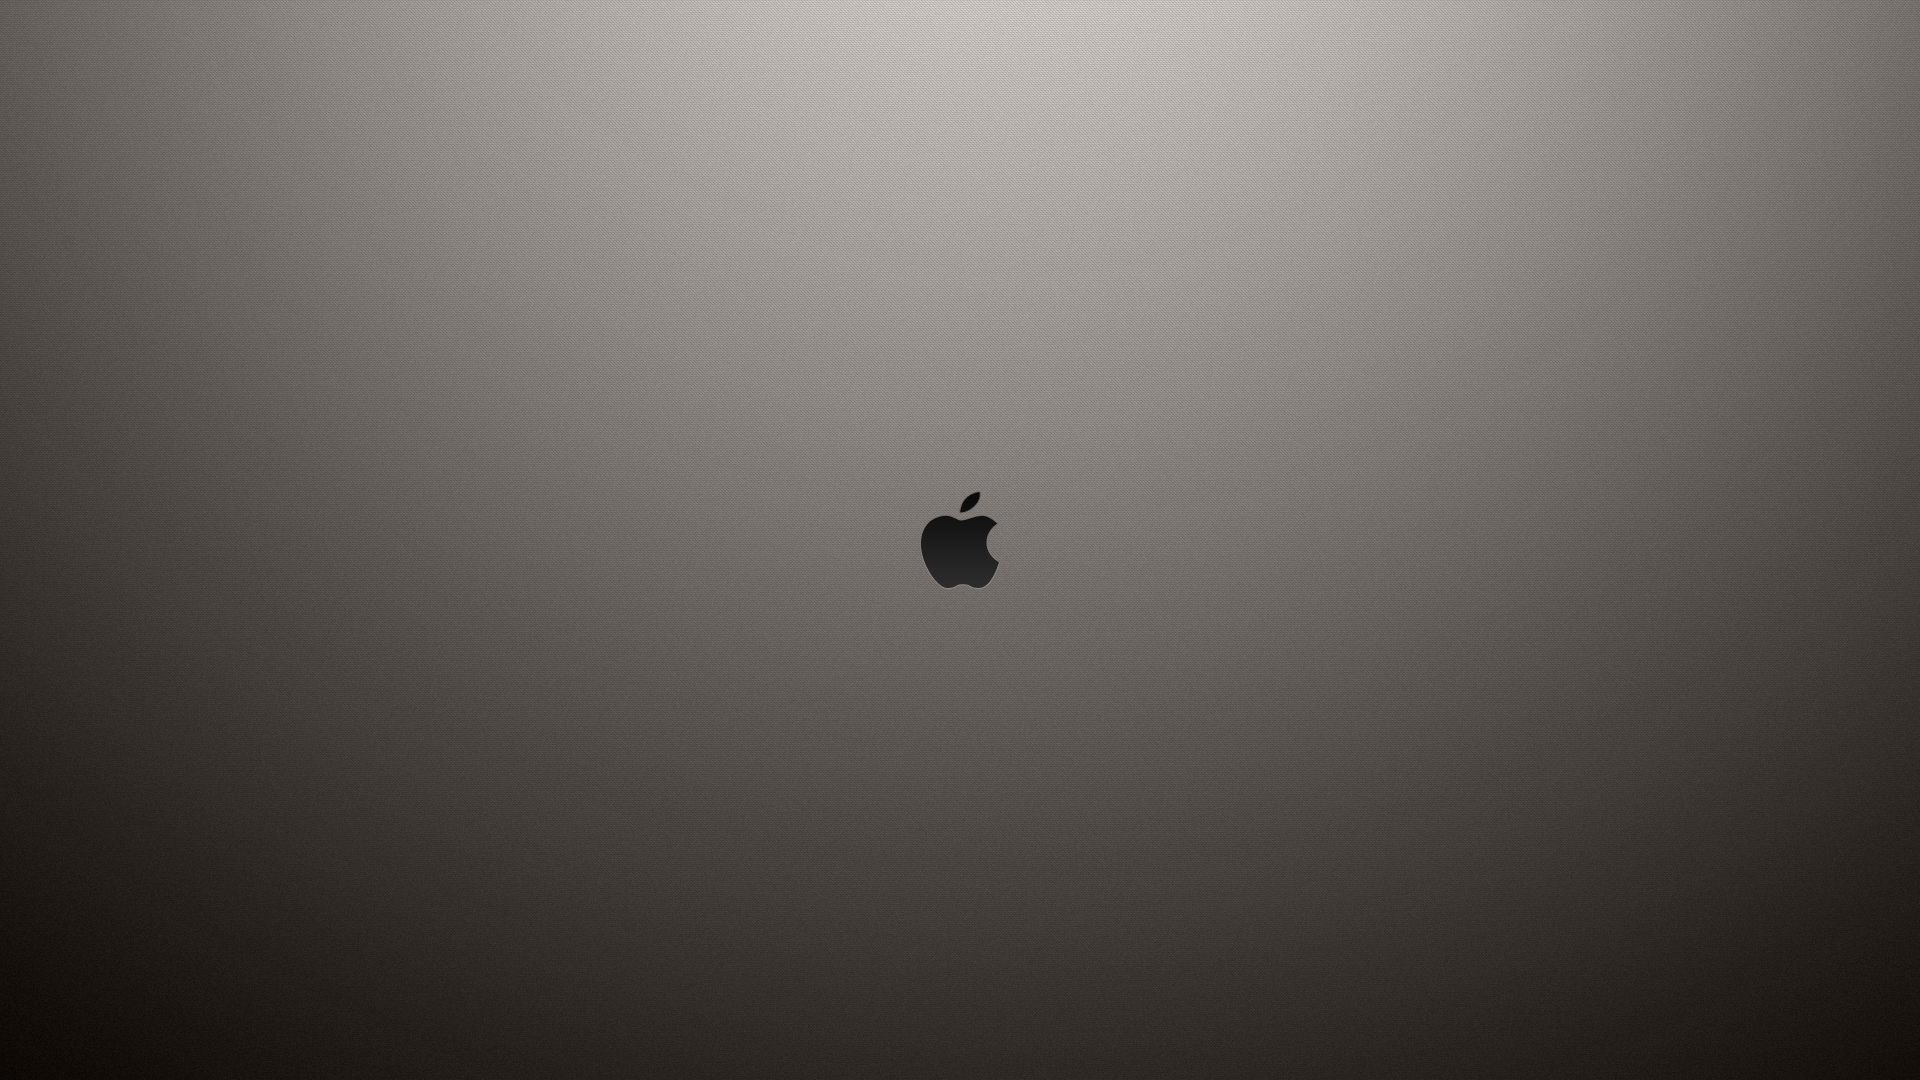 Tint Apple Logo Wallpaper